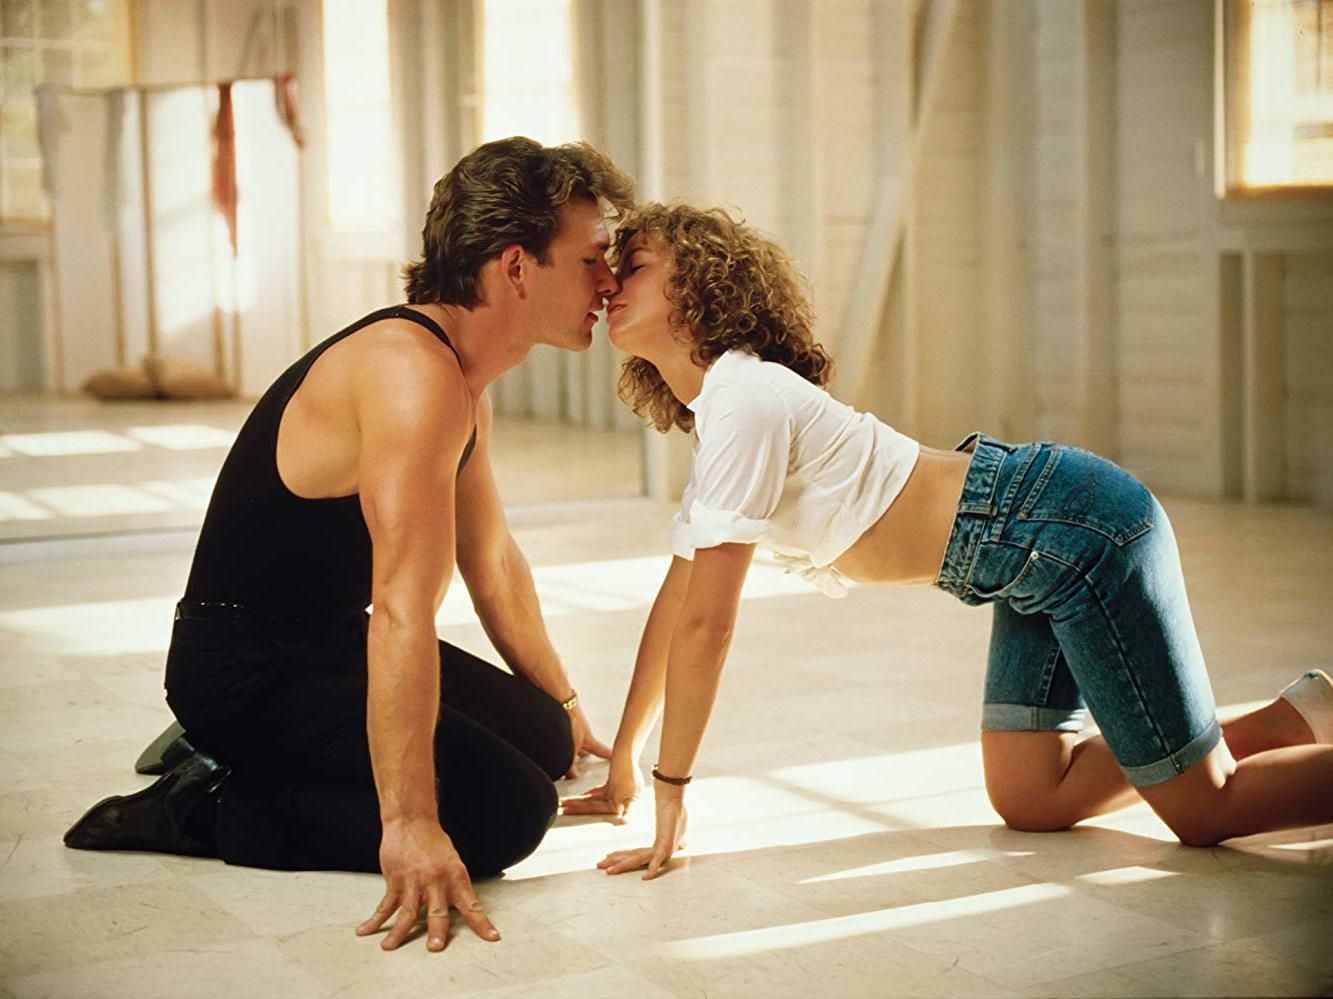 How Dirty Dancing opened my eyes to the urgency of abortion rights